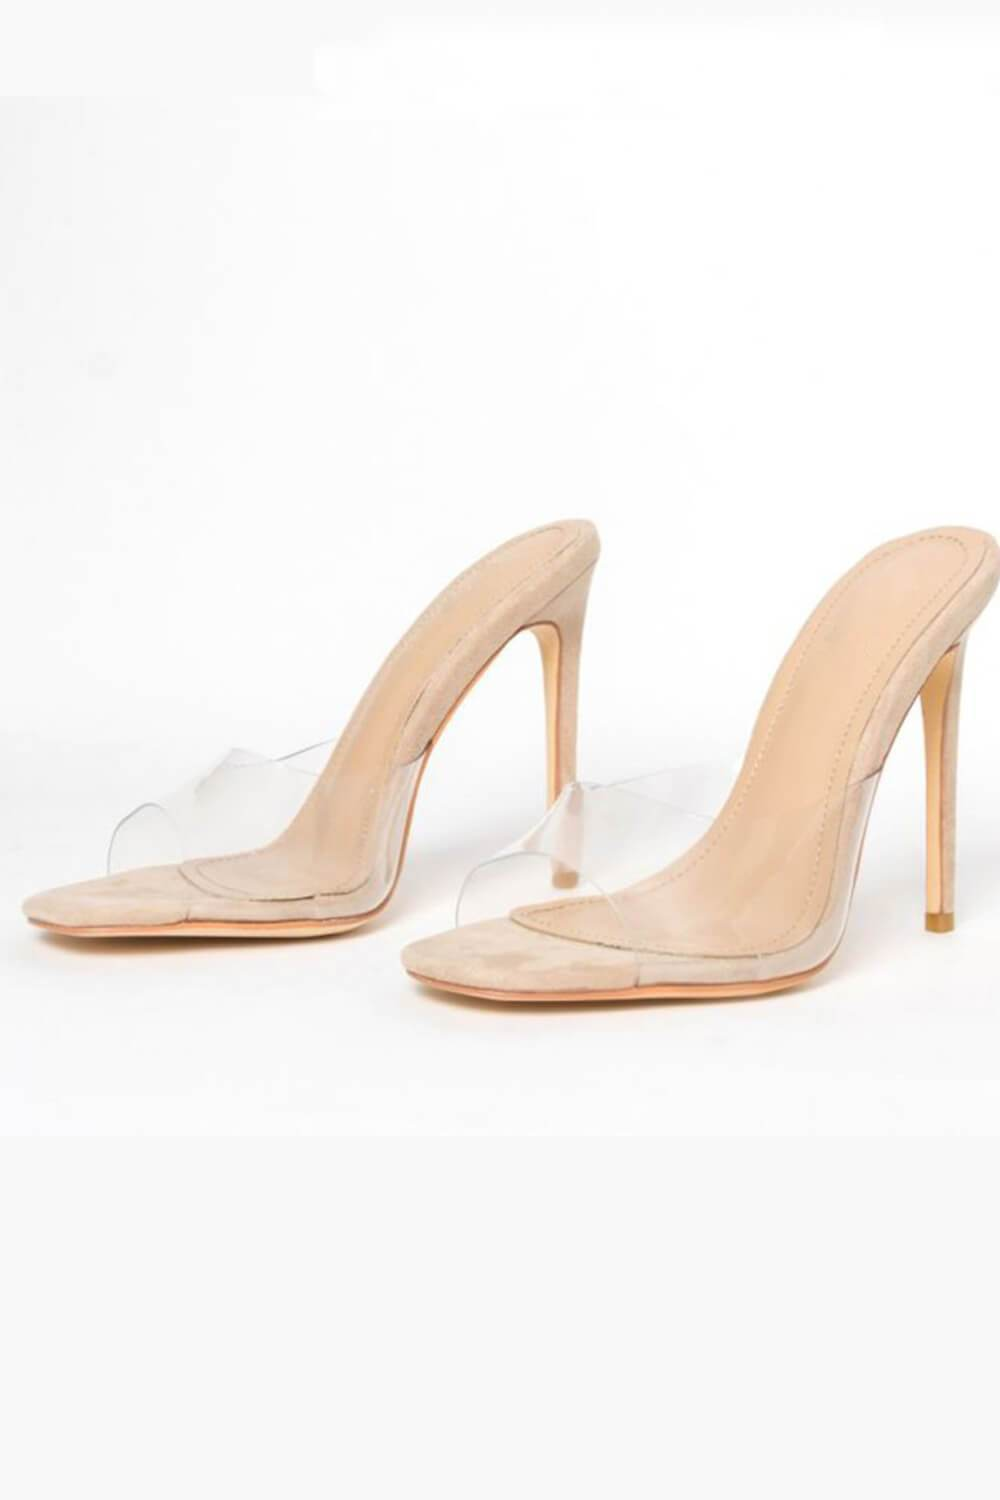 Beige Snake Clear Stiletto Mules (4095662981179)